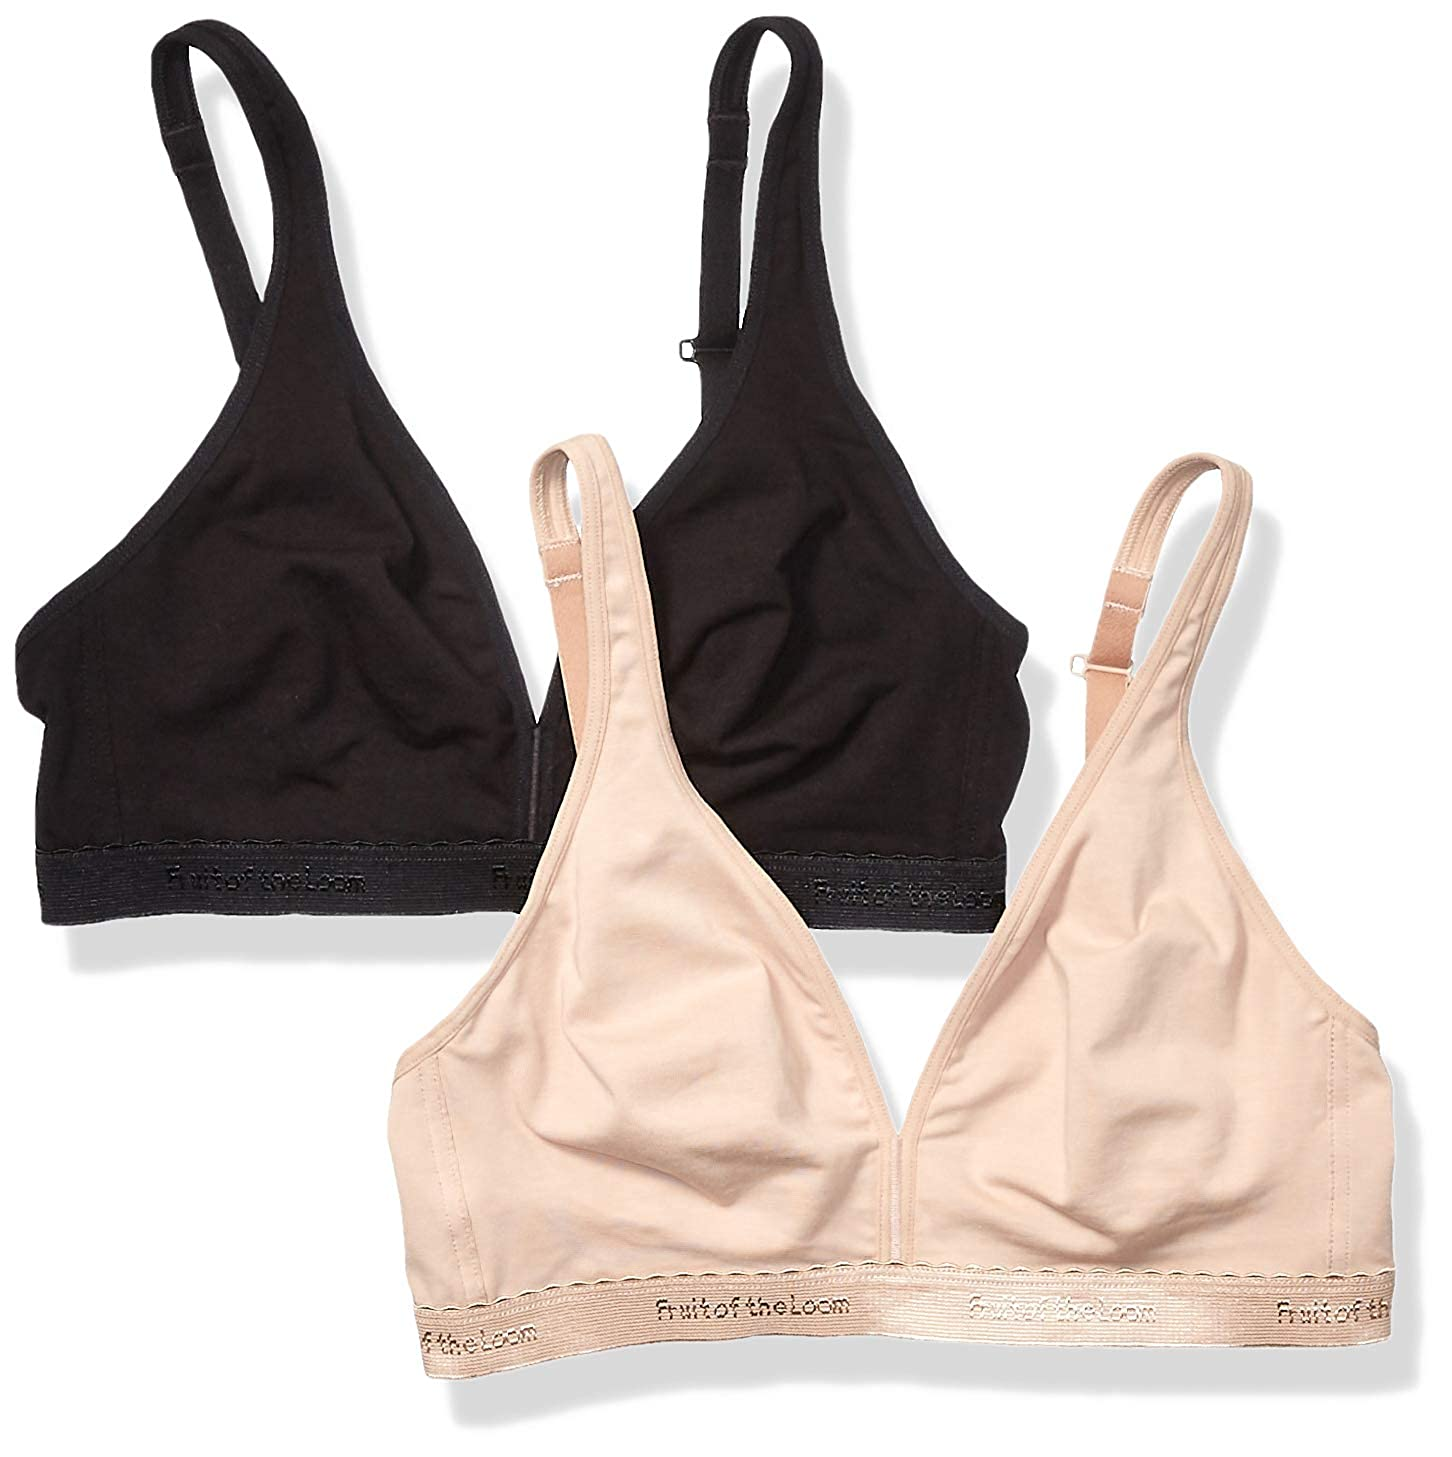 965a193b04a Fruit of the Loom Womens Wirefree Bralette 2 Pack Bra  Amazon.ca  Clothing    Accessories